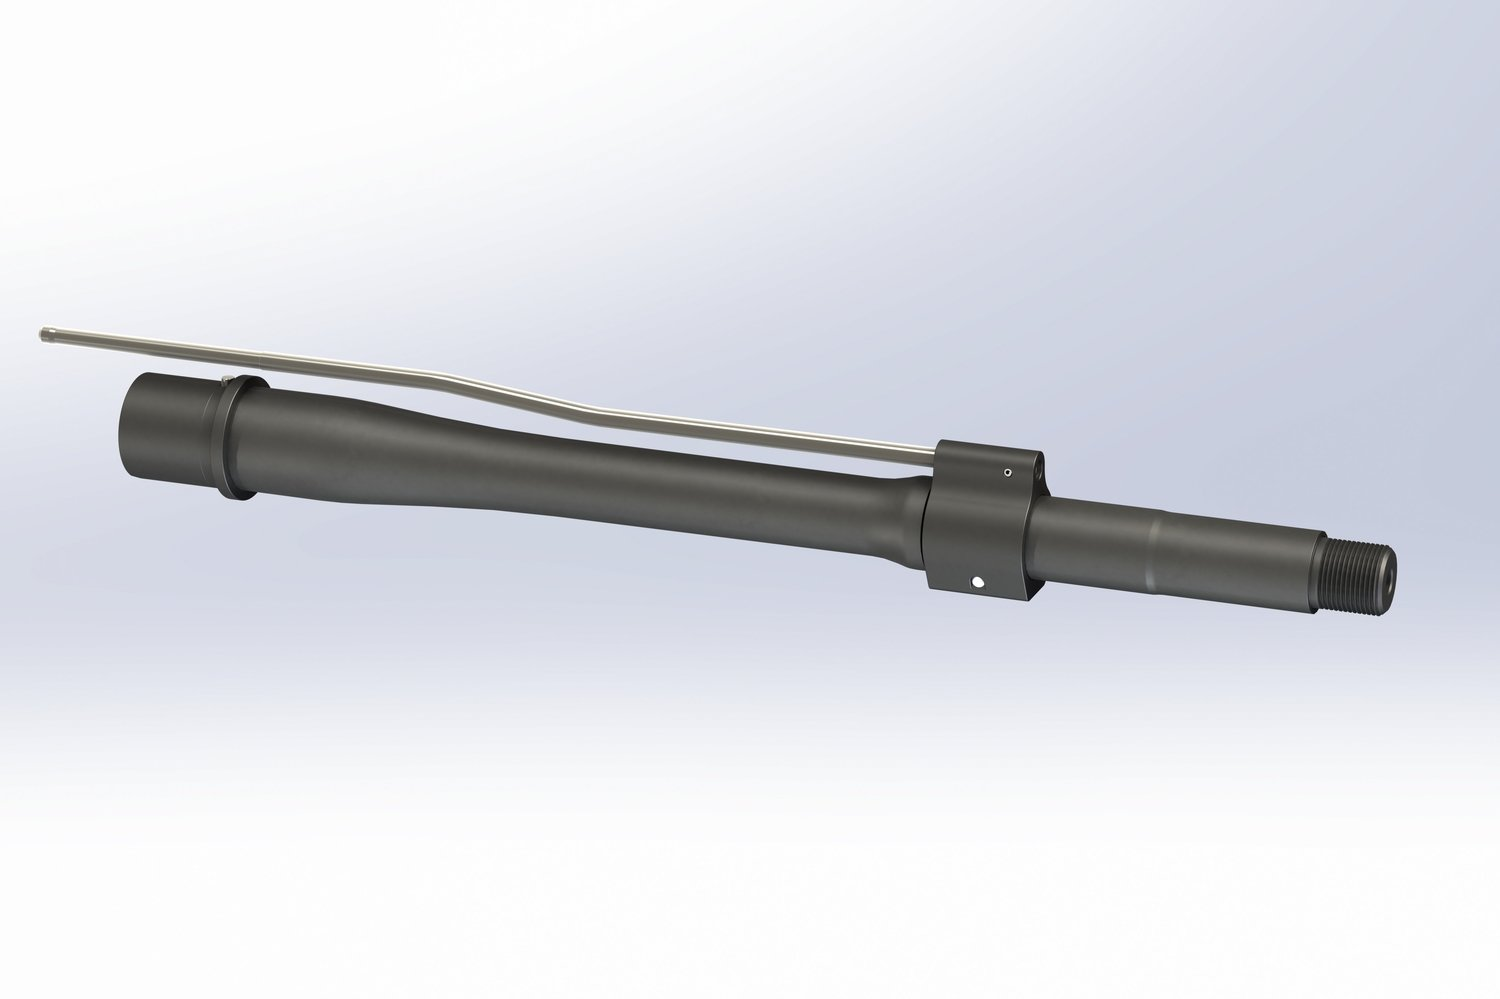 "BRT 11.5"" OPTIMUM CQB-S Barrel - Suppressor Gas Drive"